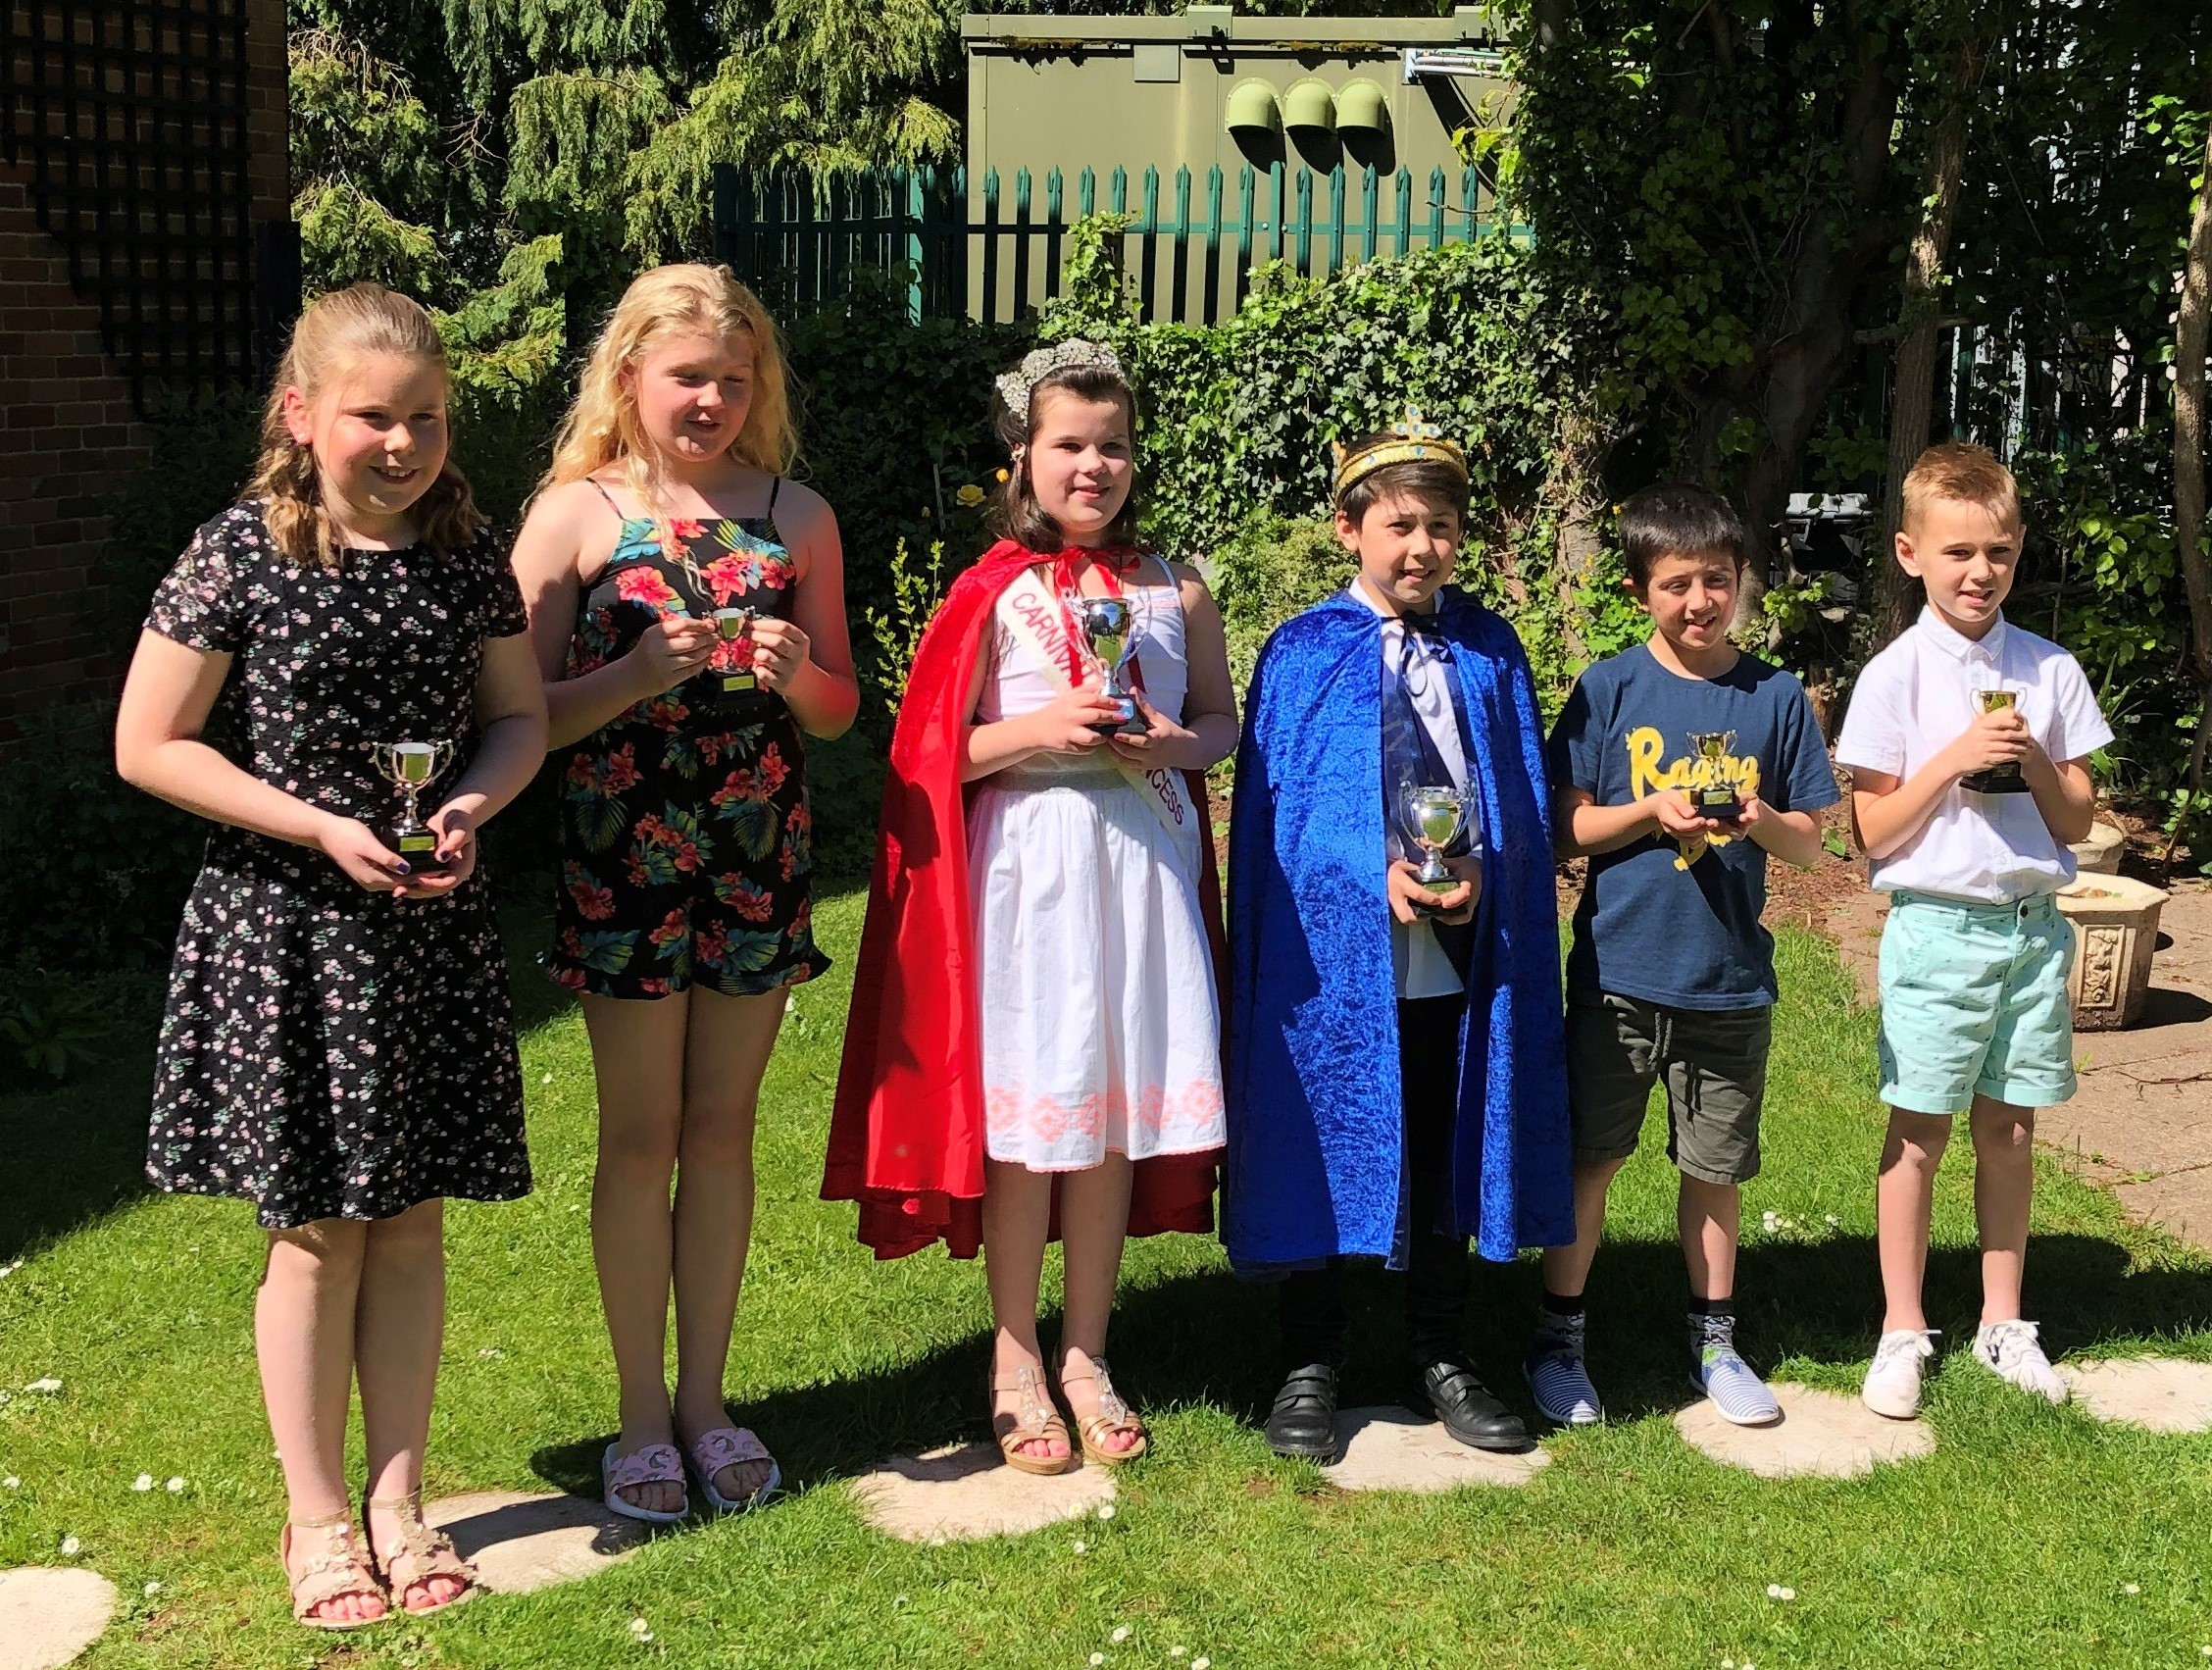 Ross on Wye Carnival Princess Phoebe with attendants Molly and Eboney and Carnival Prince Daniel with consorts Bobby and Cody. Photo: Ross Carnival